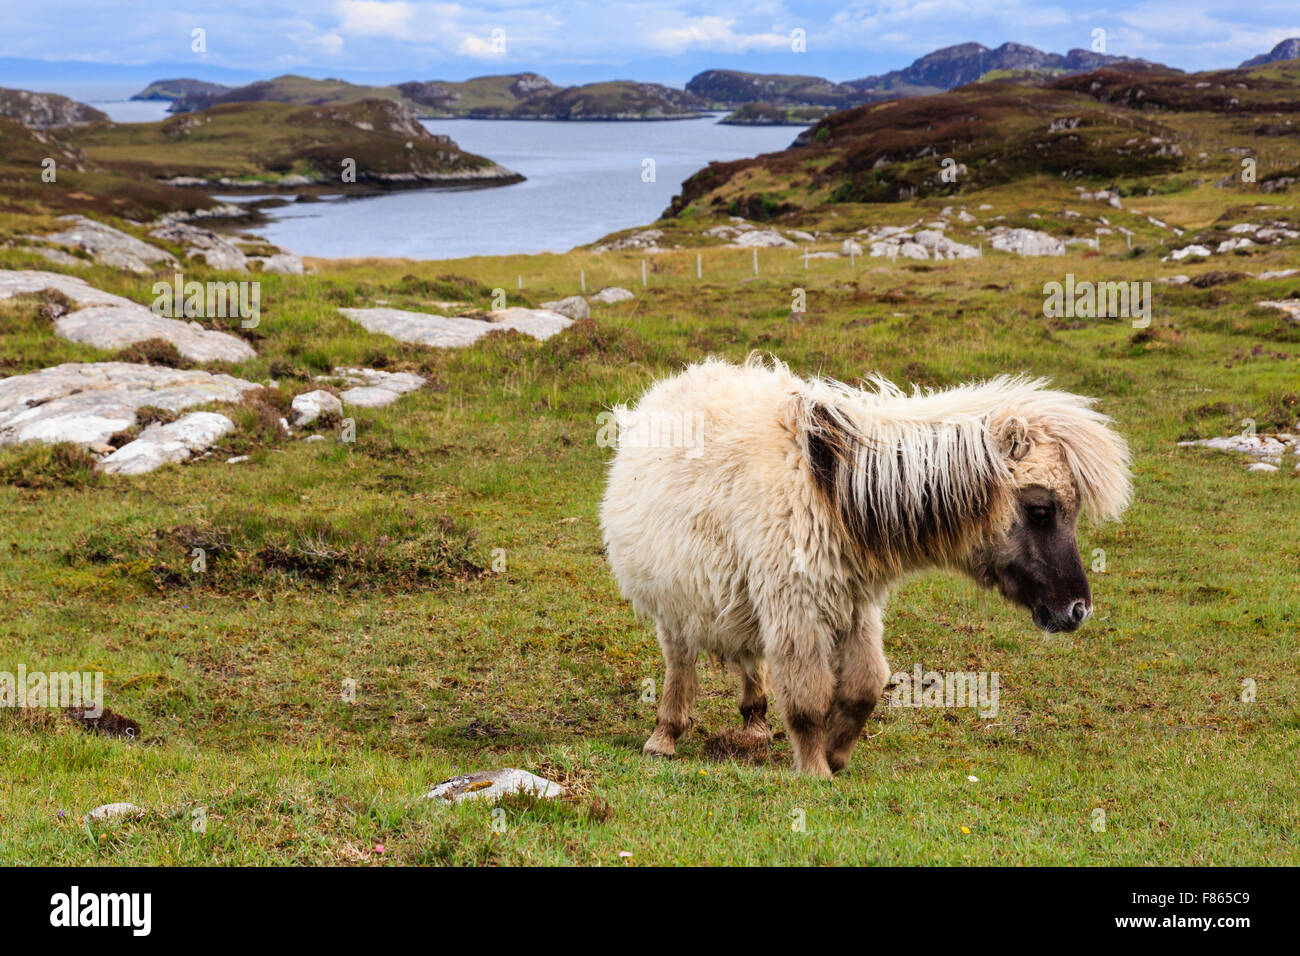 Wild pony with a shaggy coat on coastal grassland. Loch Sgioport South Uist Outer Hebrides Western Isles Scotland - Stock Image